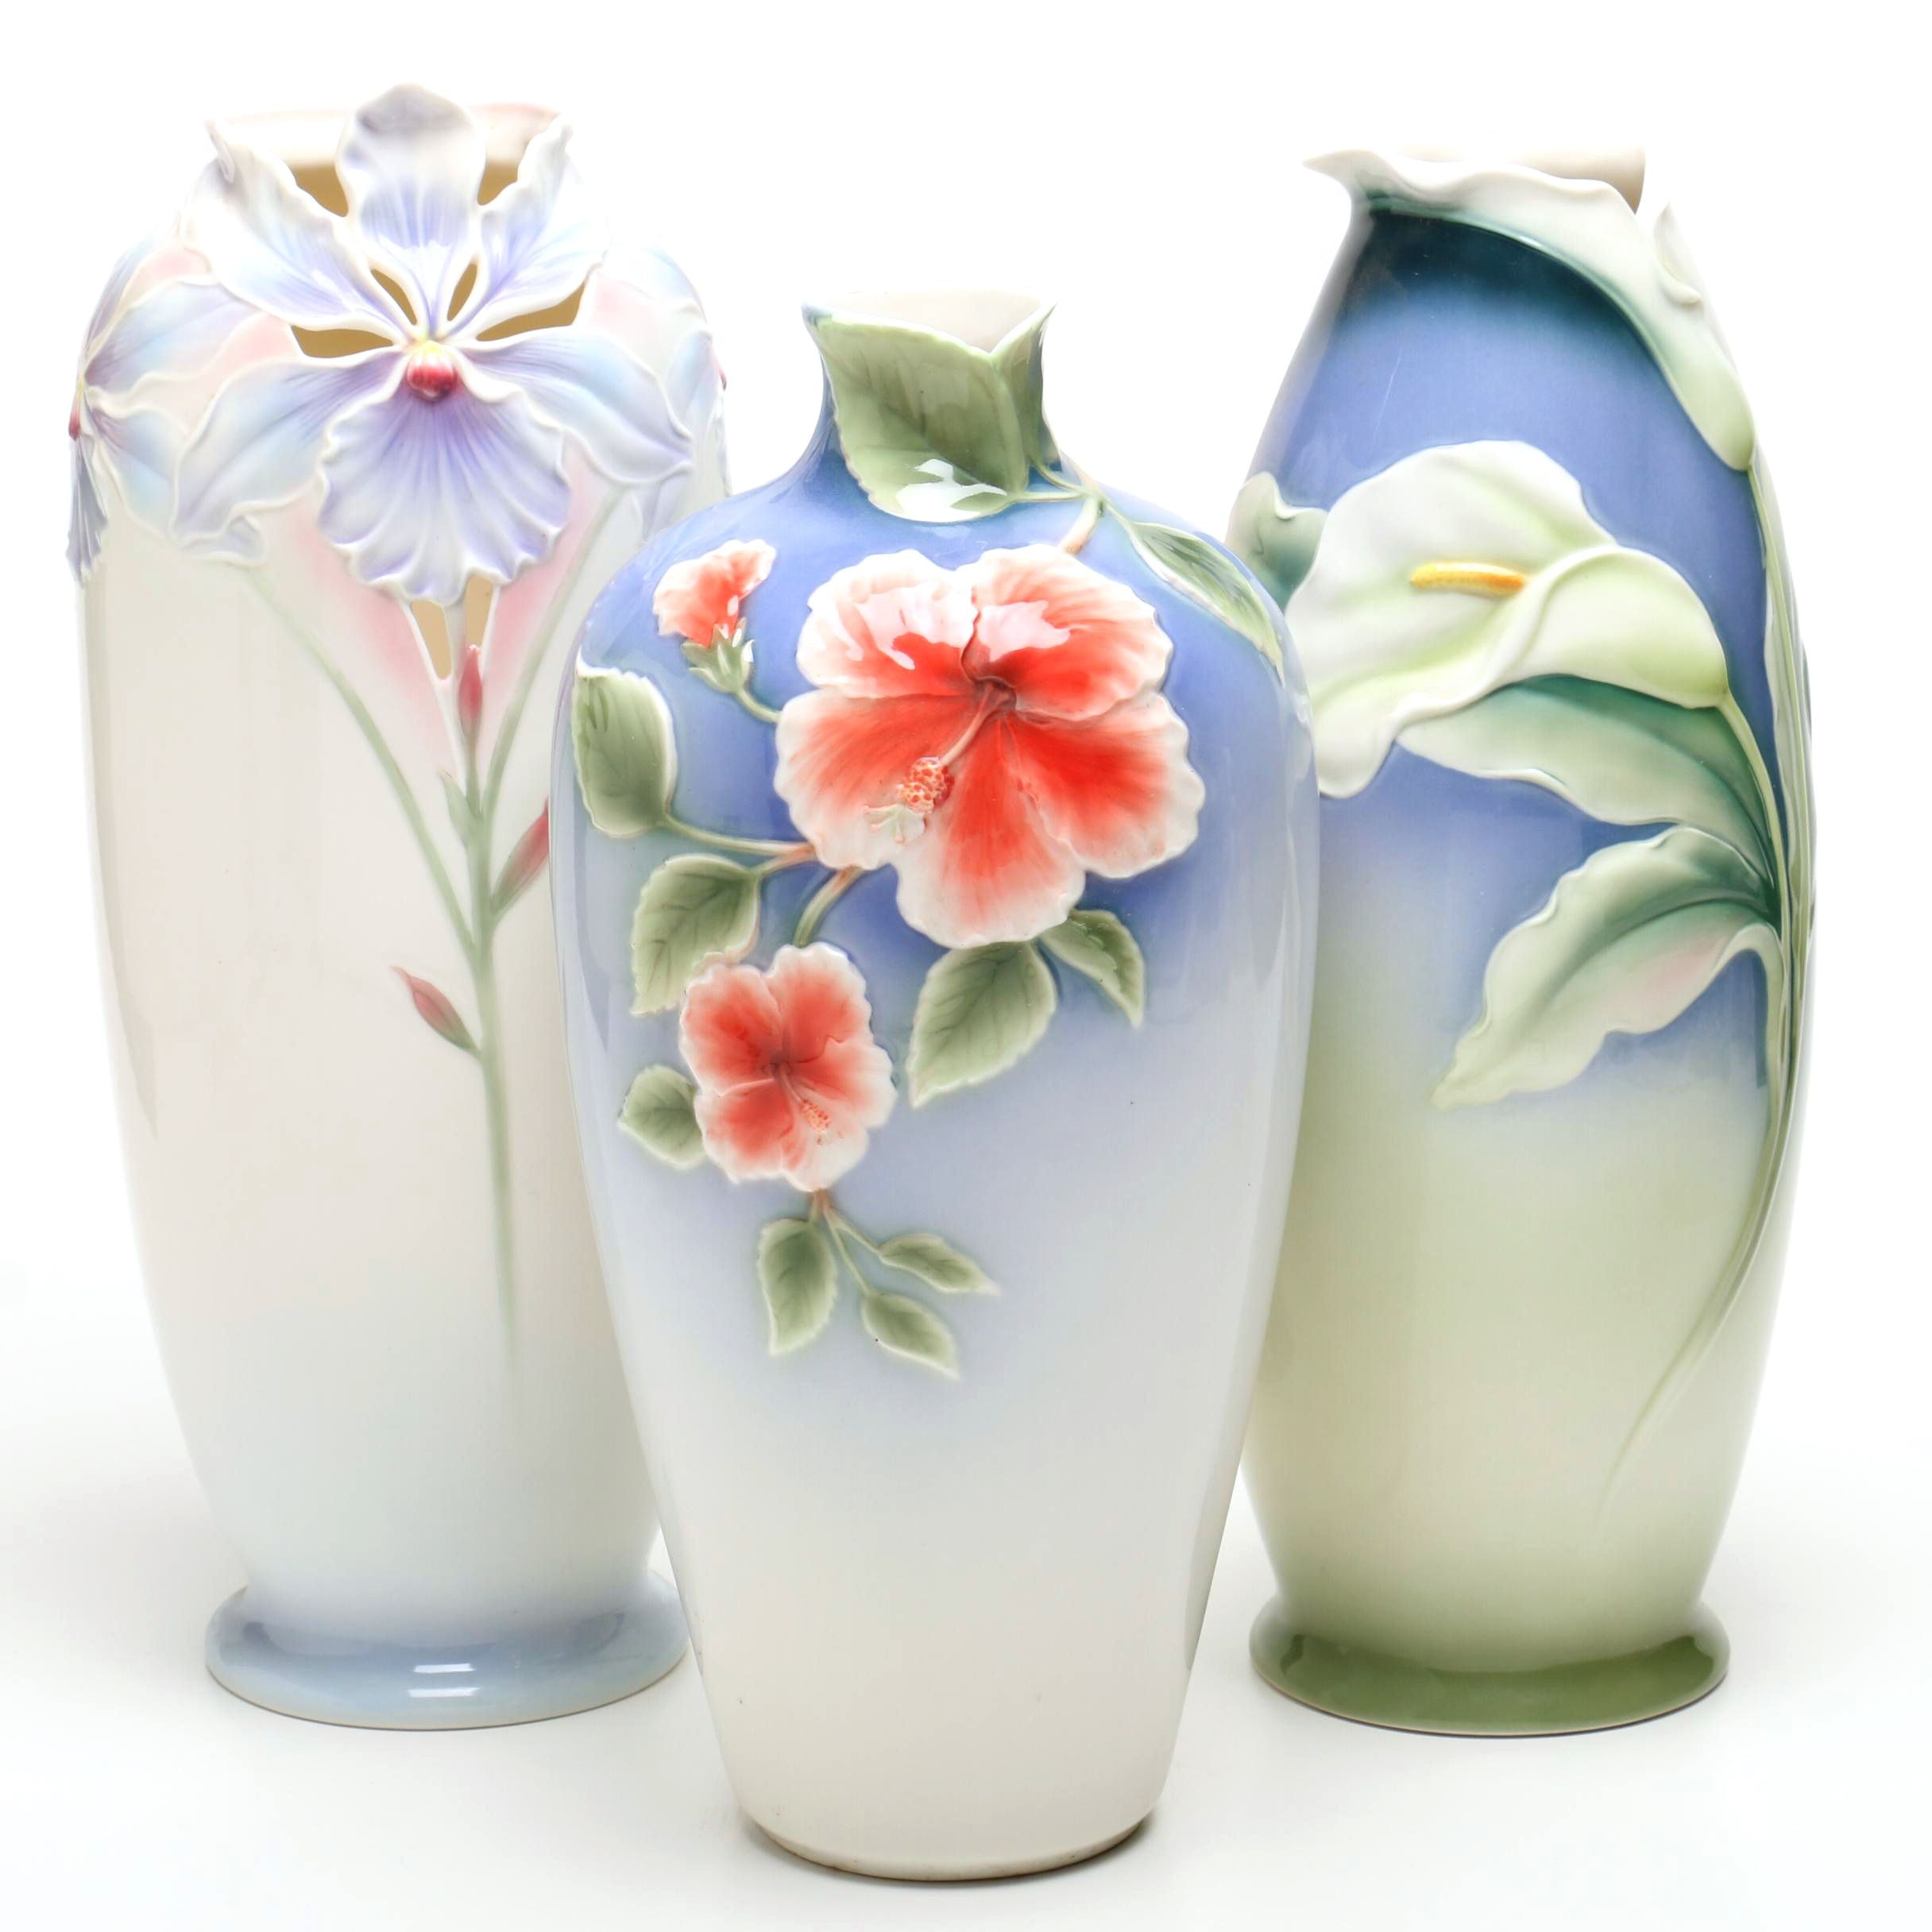 Tall Porcelain Franz Collection Vases